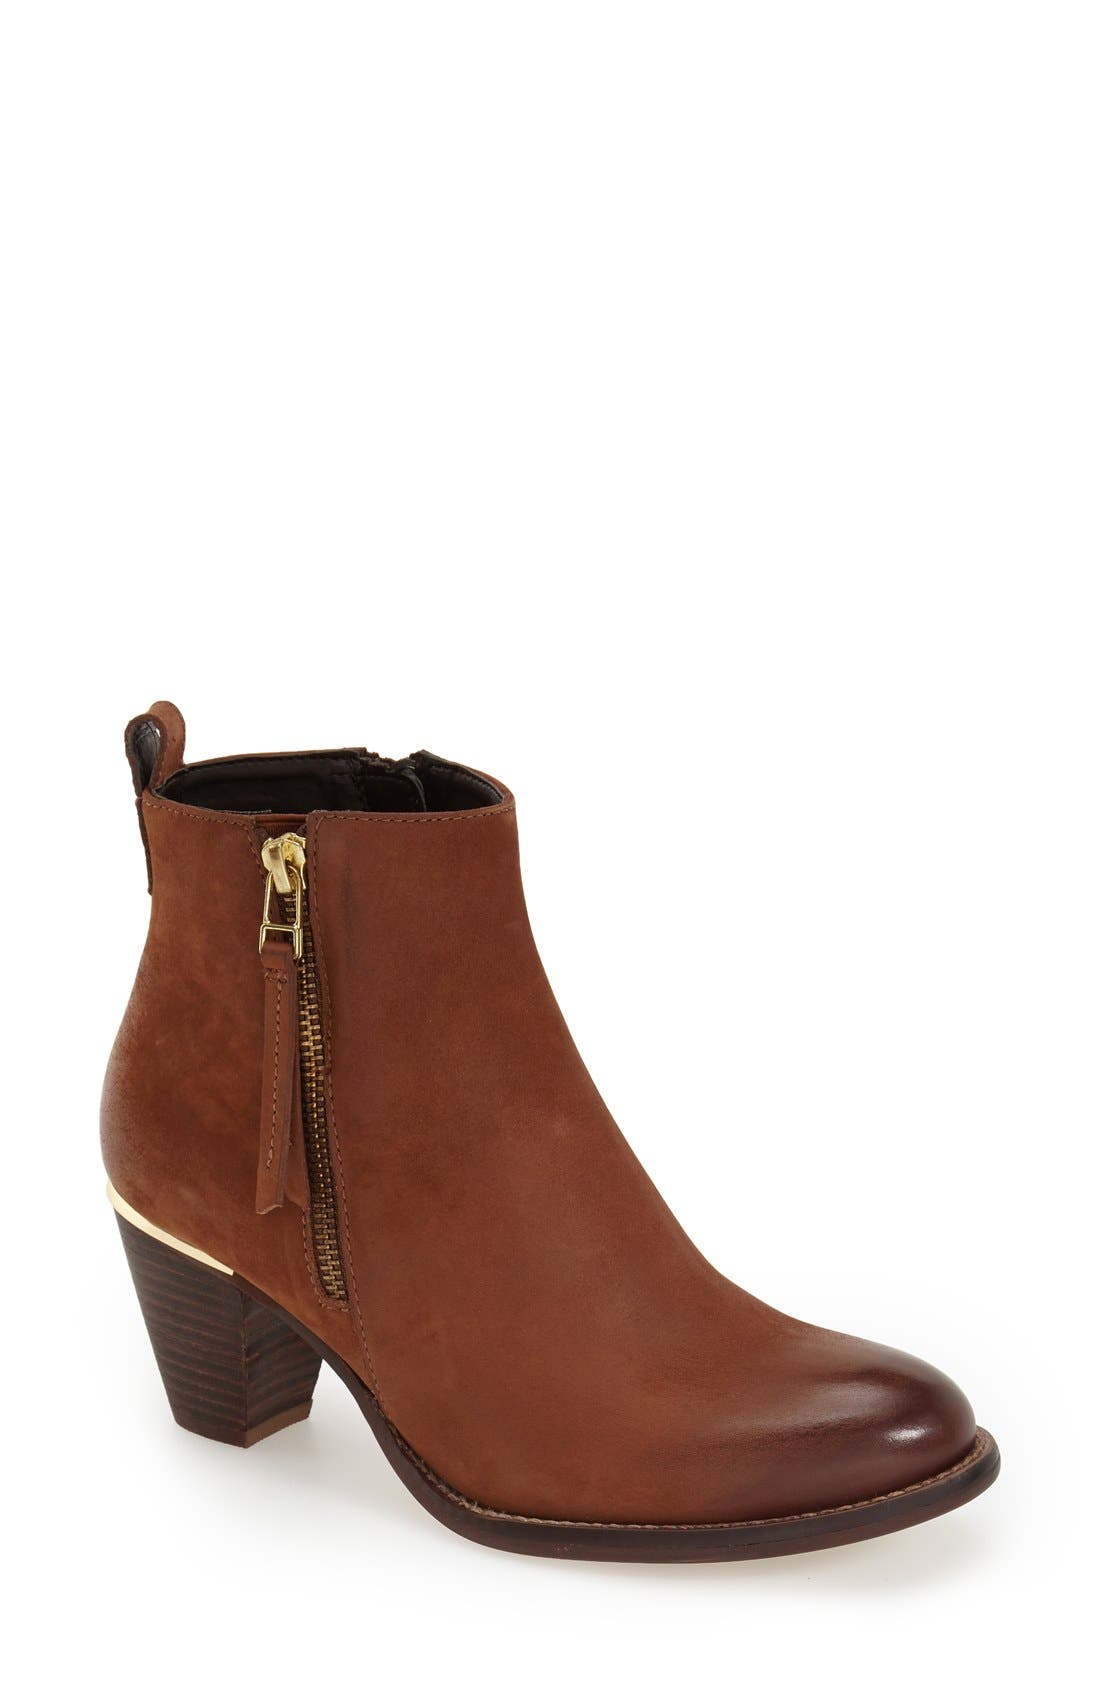 'Wantagh' Leather Ankle Boot,                         Main,                         color, Cognac Leather